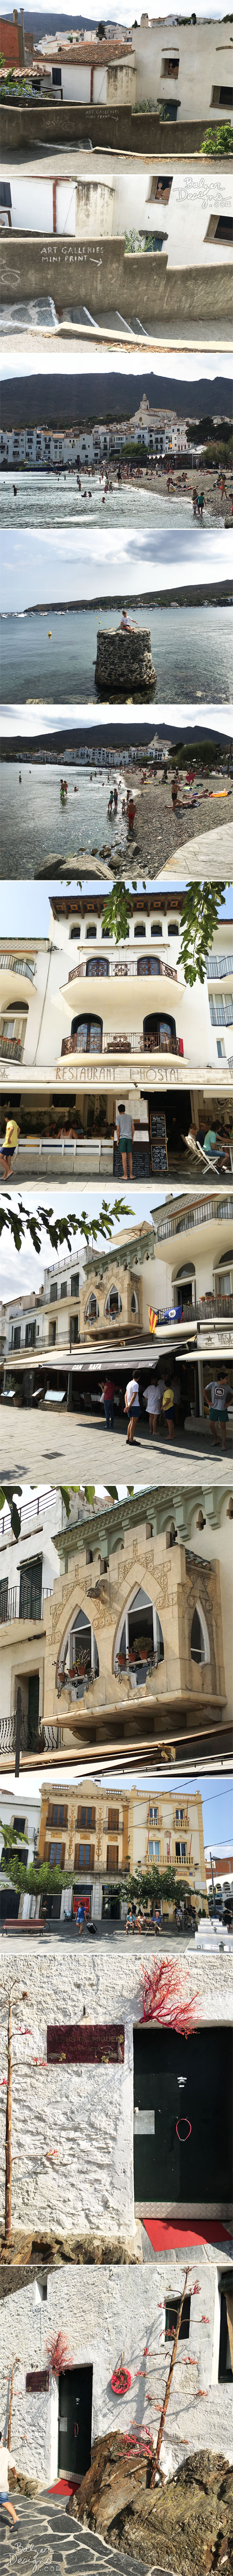 From the Balzer Designs Blog: Walking Cadaques